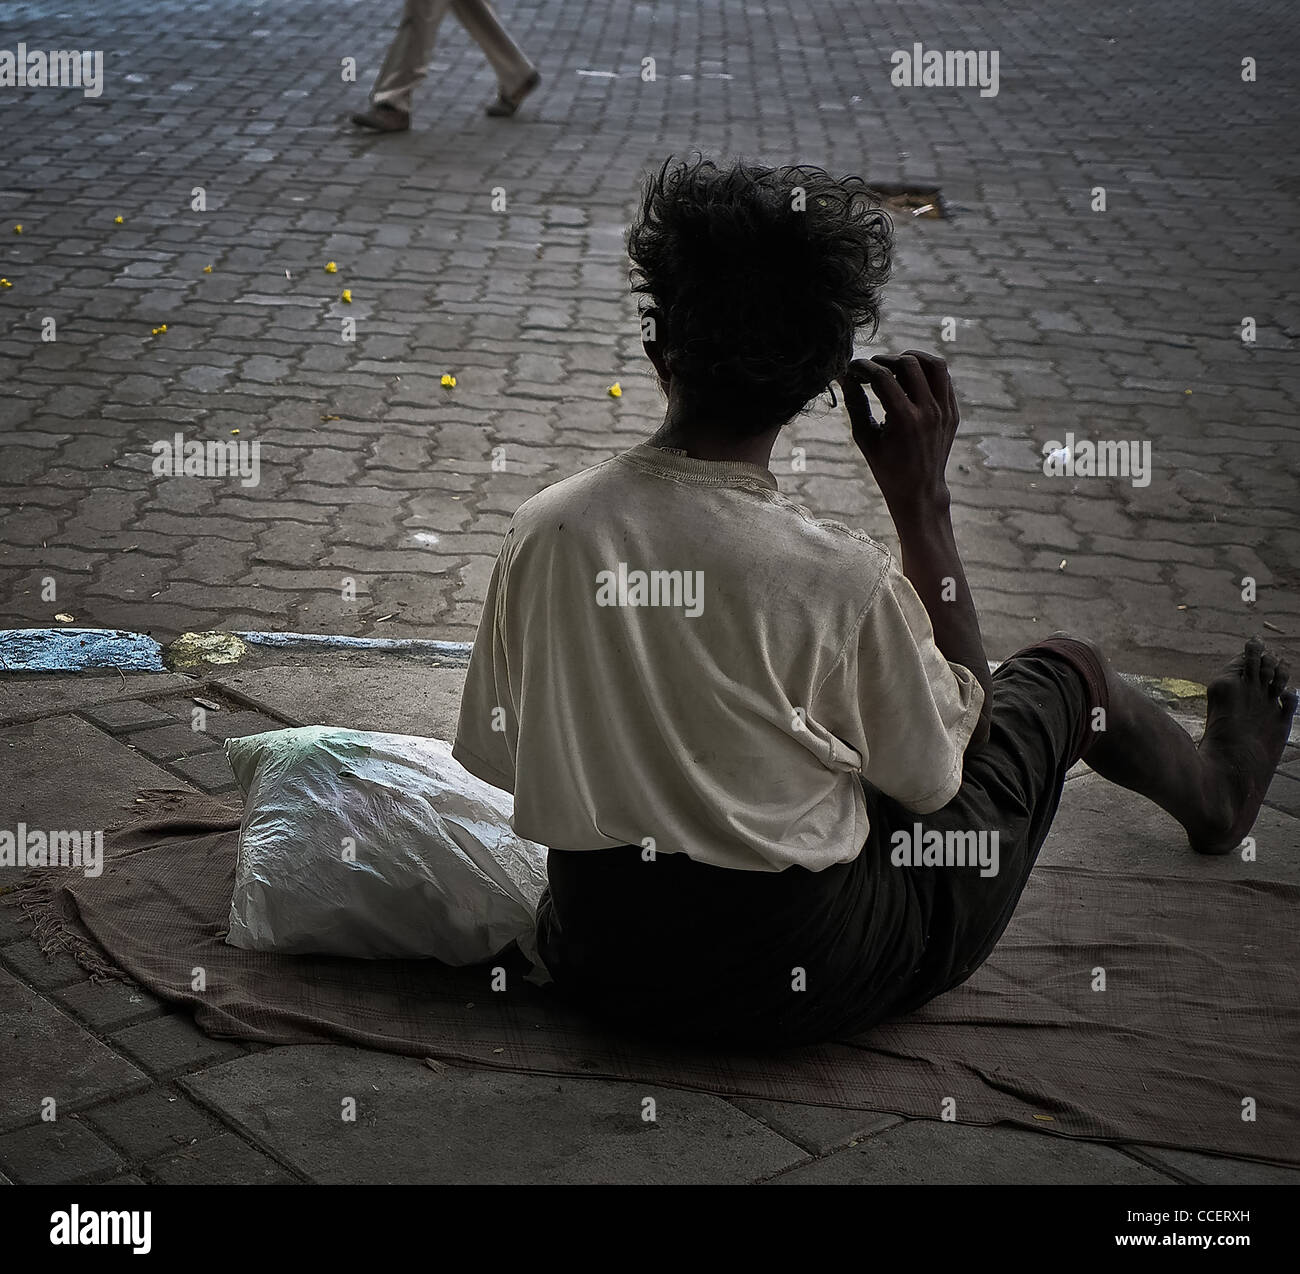 Untouchable and disabled Bombay., The backof misery. - Stock Image